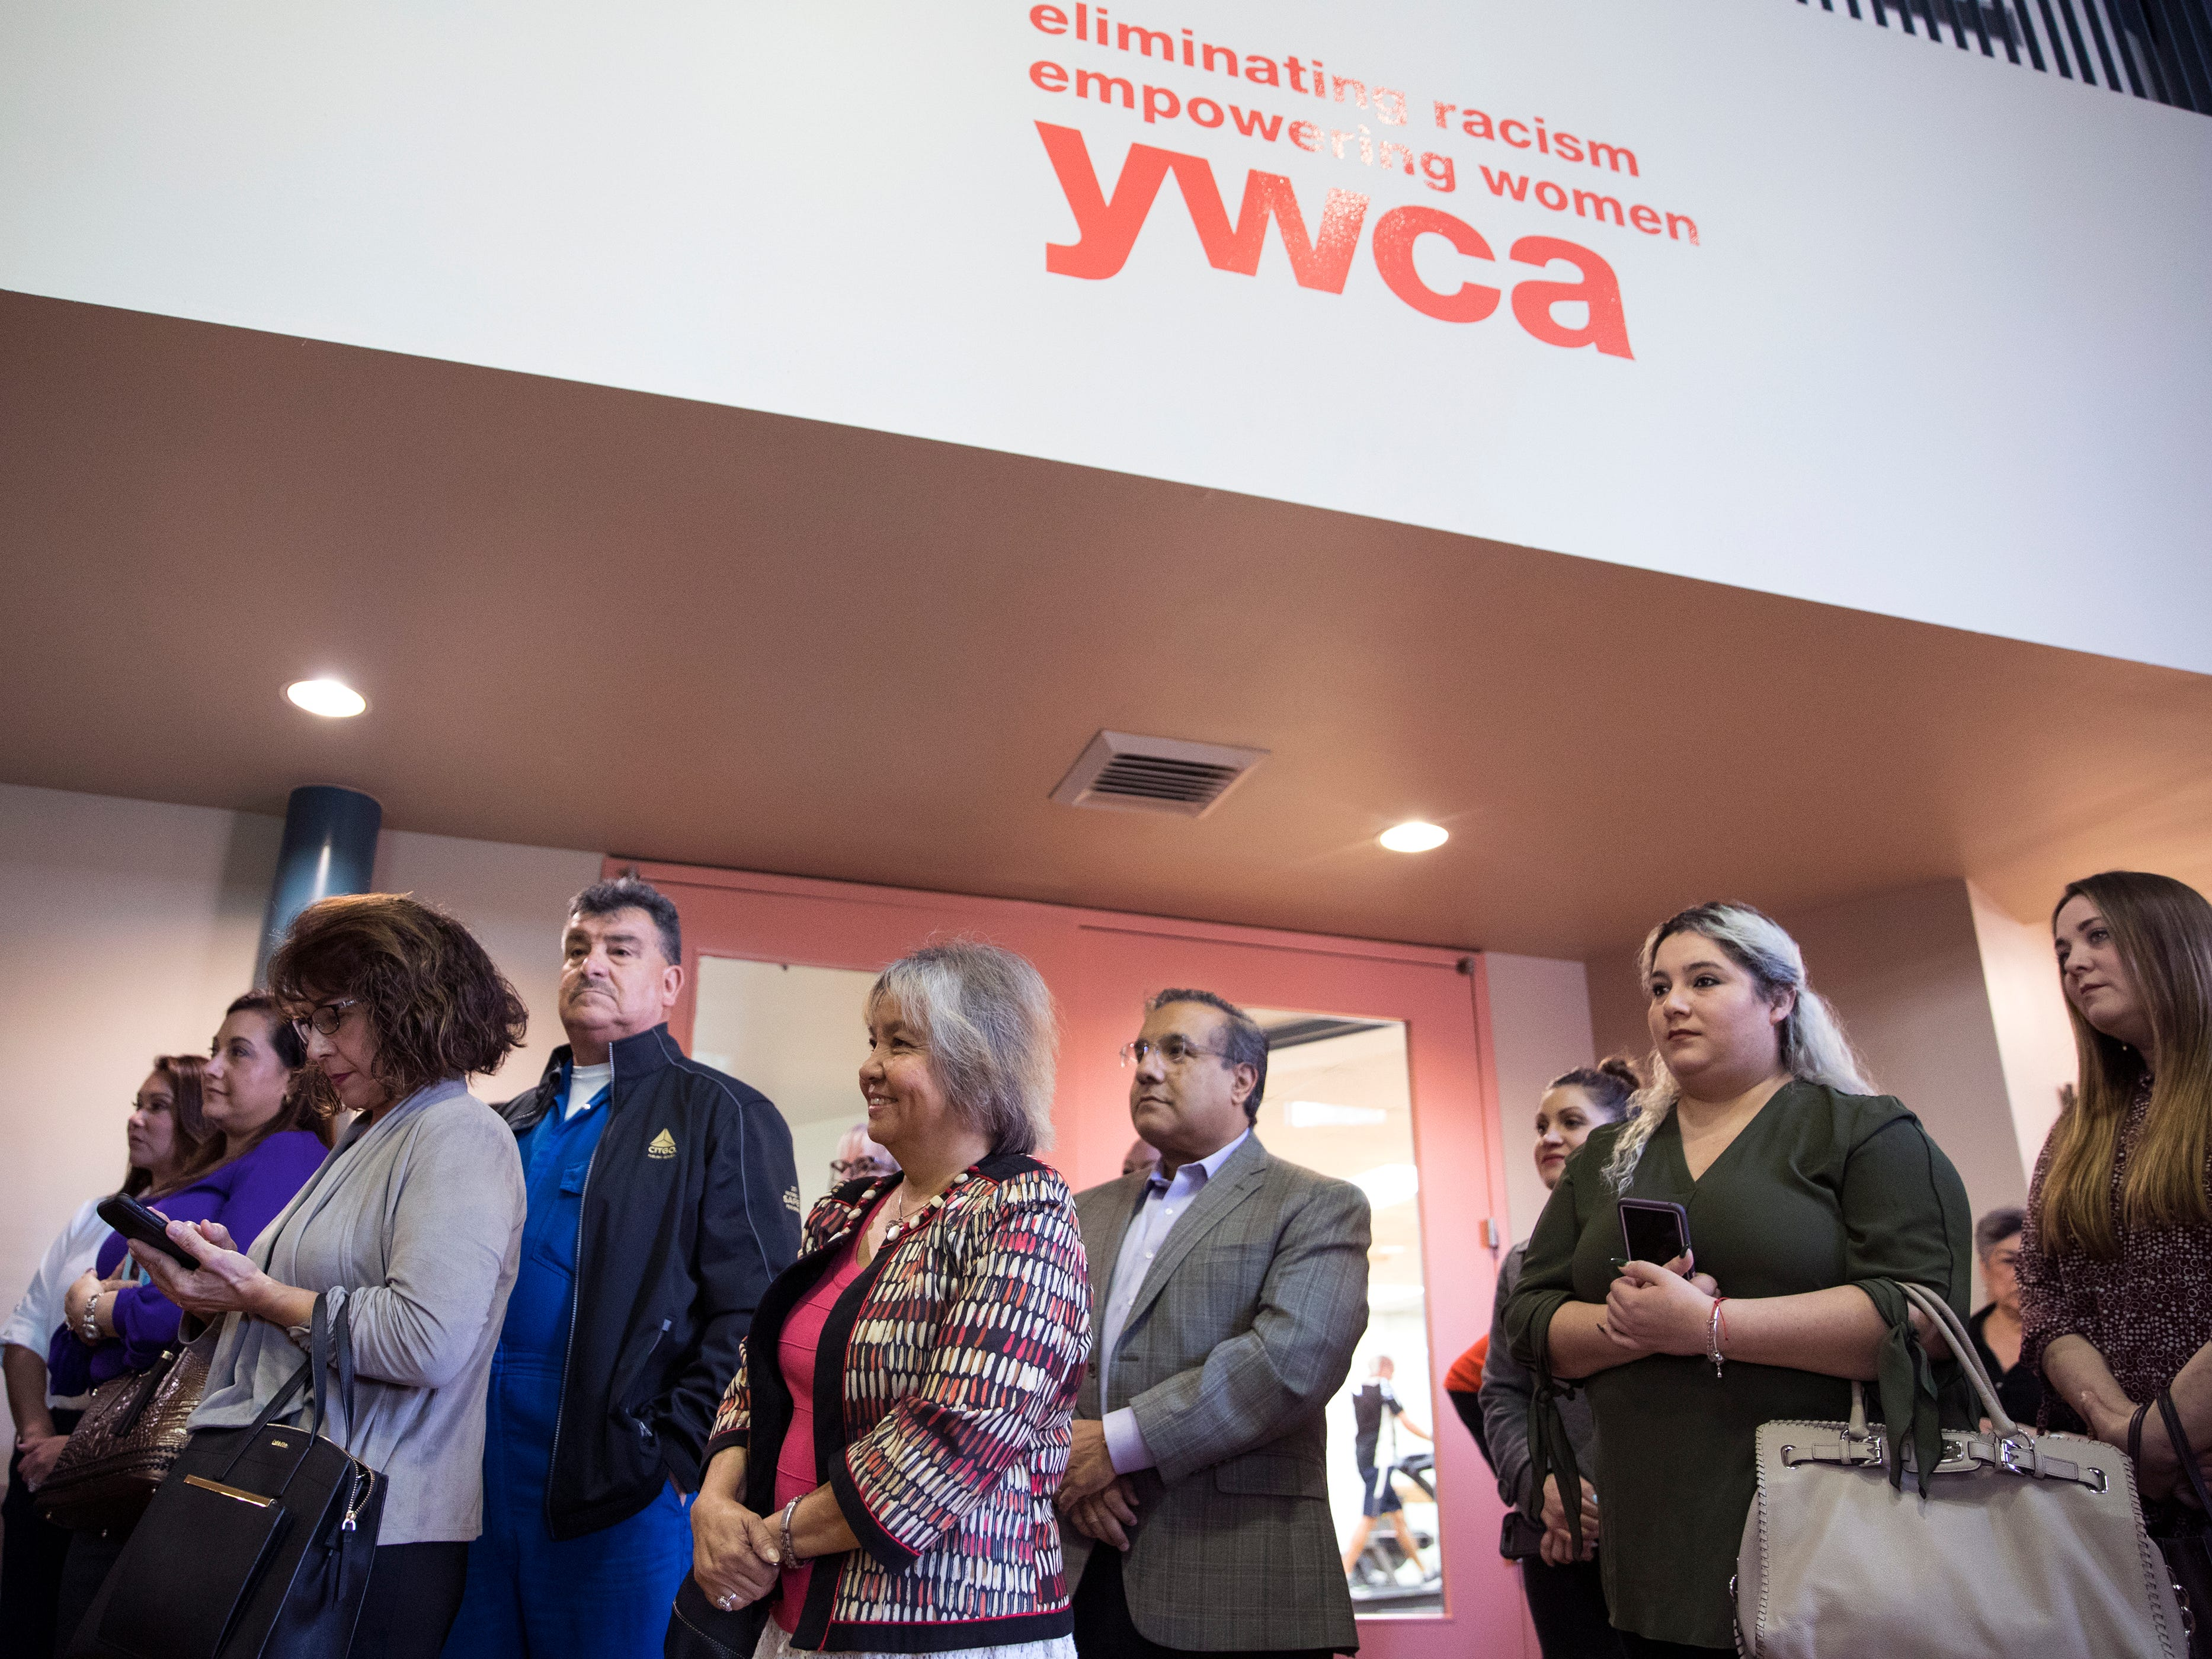 Members of the community and former honorees of the Y Women in Careers attend the announcement of this year's current honorees at the YWCA on Thursday, January 10, 2019. Since 1979, 283 women have been honored.